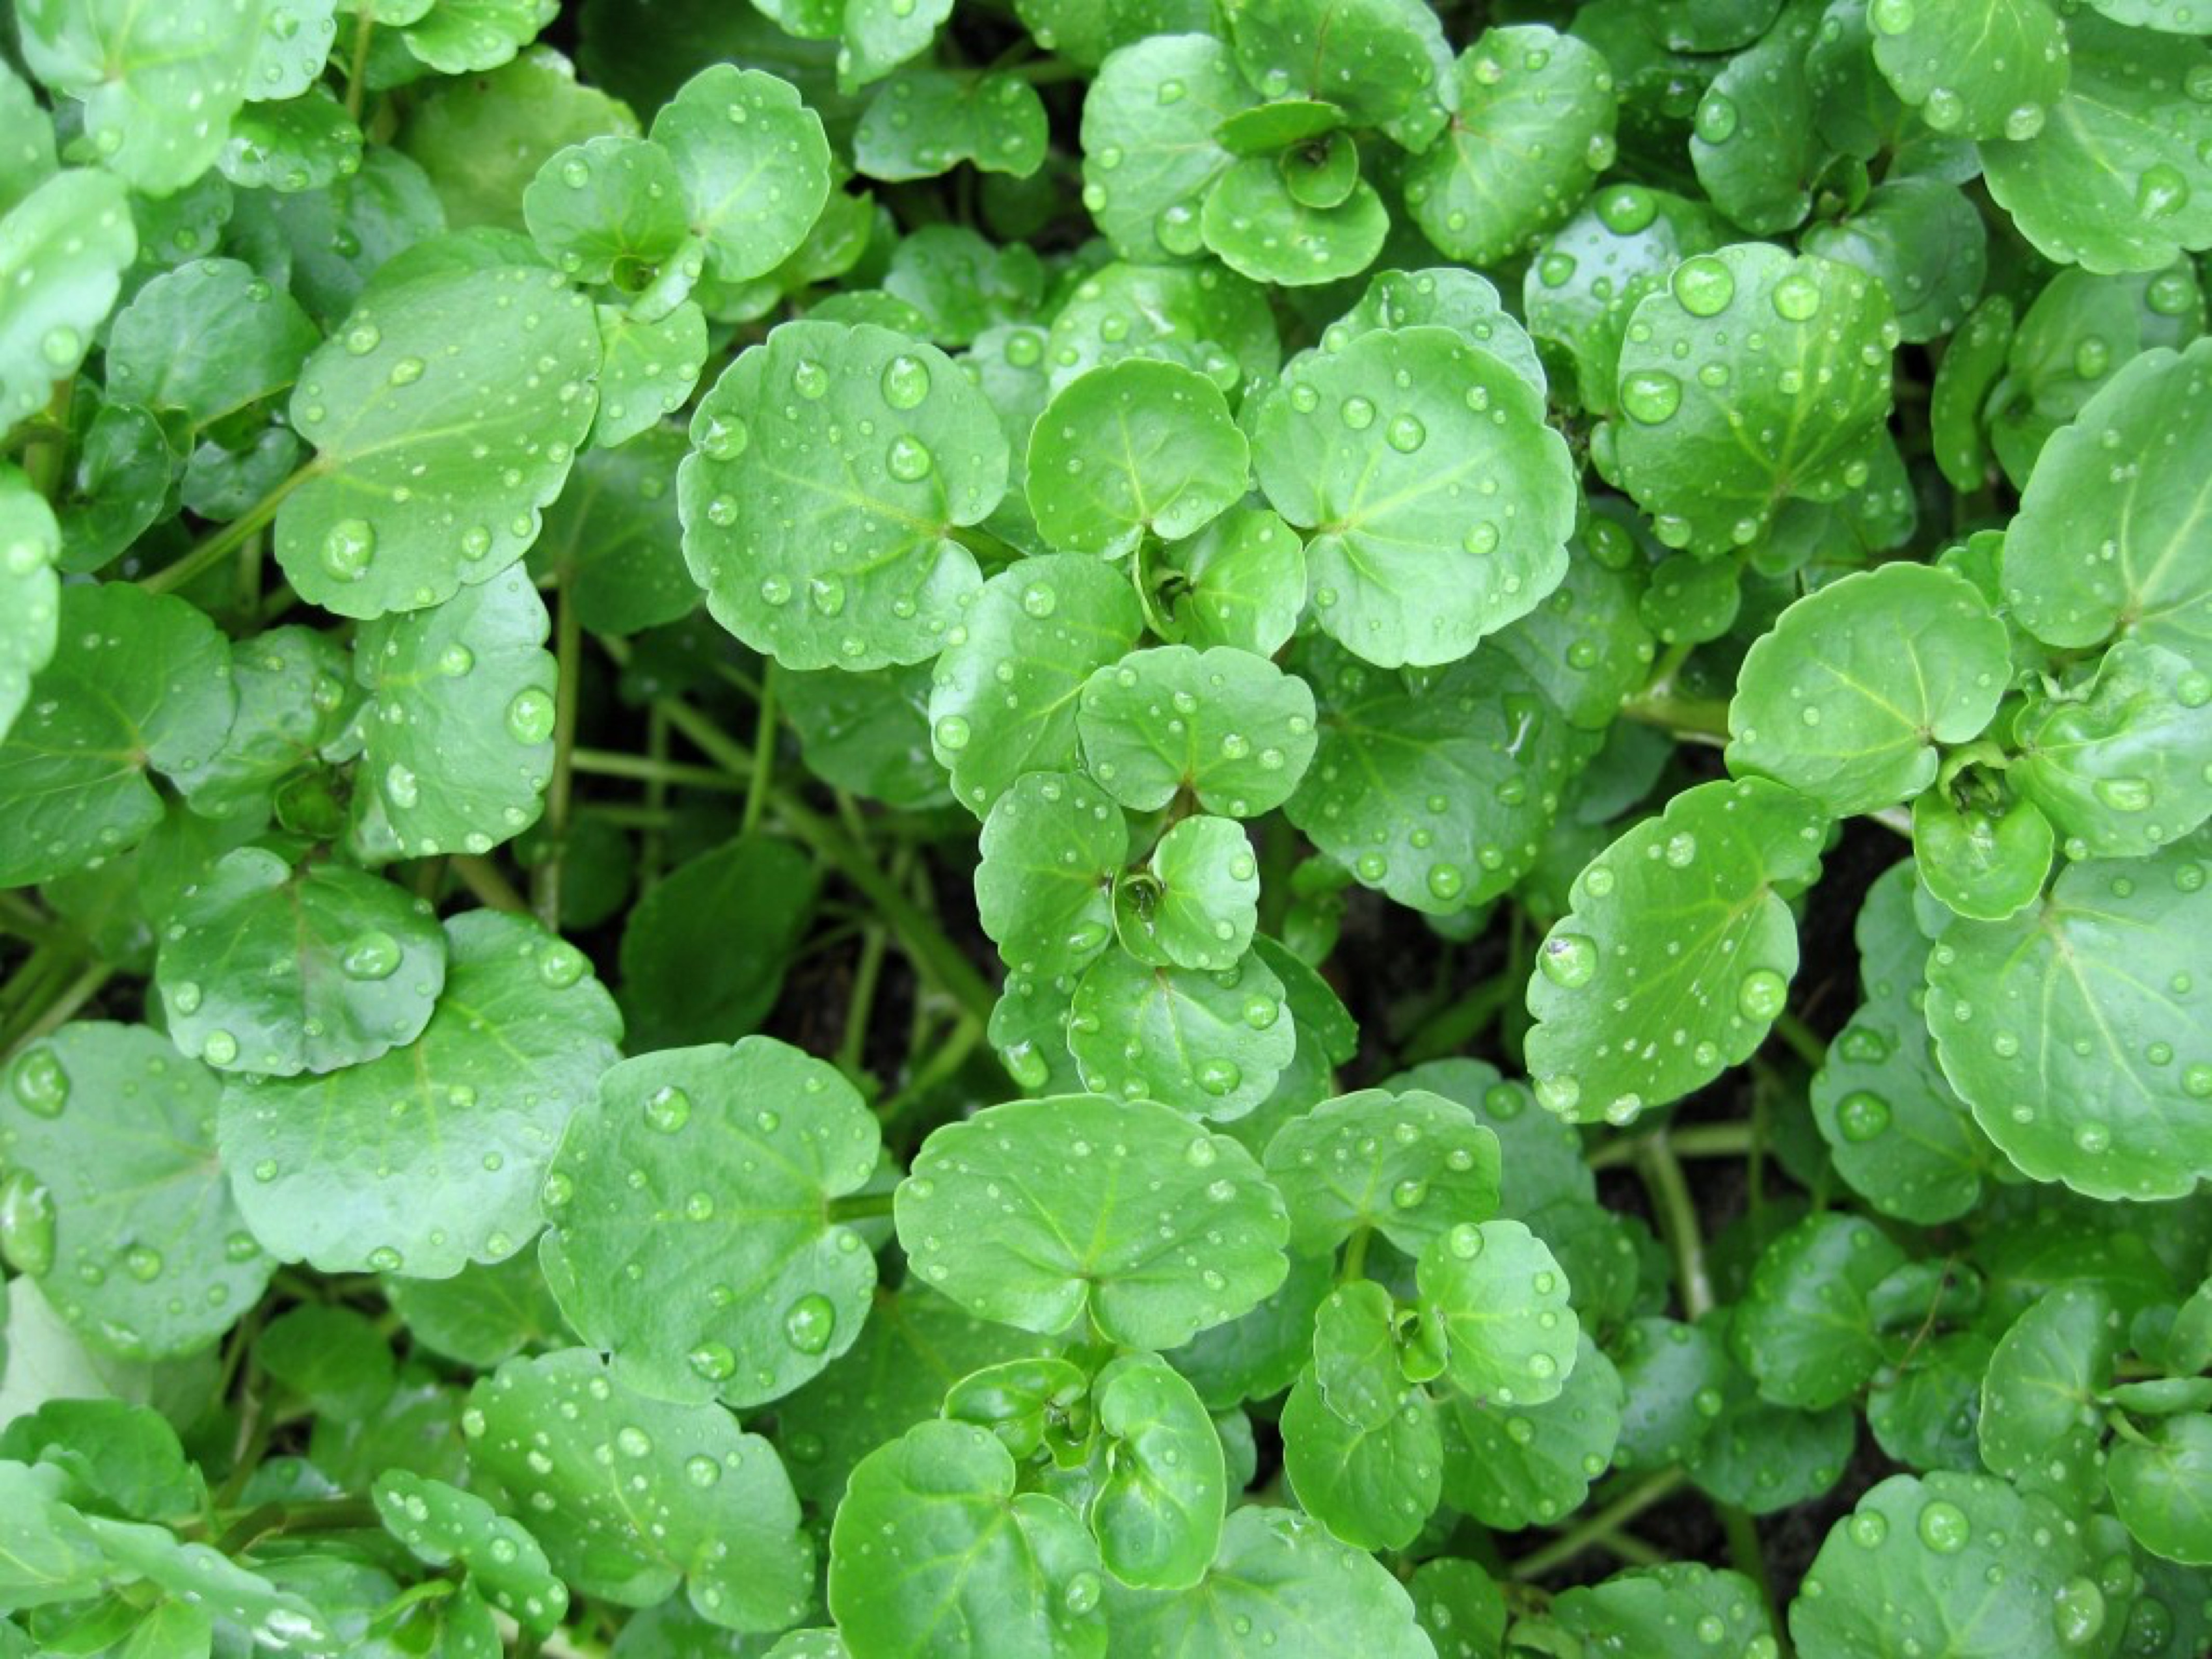 The watercress is a perennial aquatic plant cultivated for human consumption.